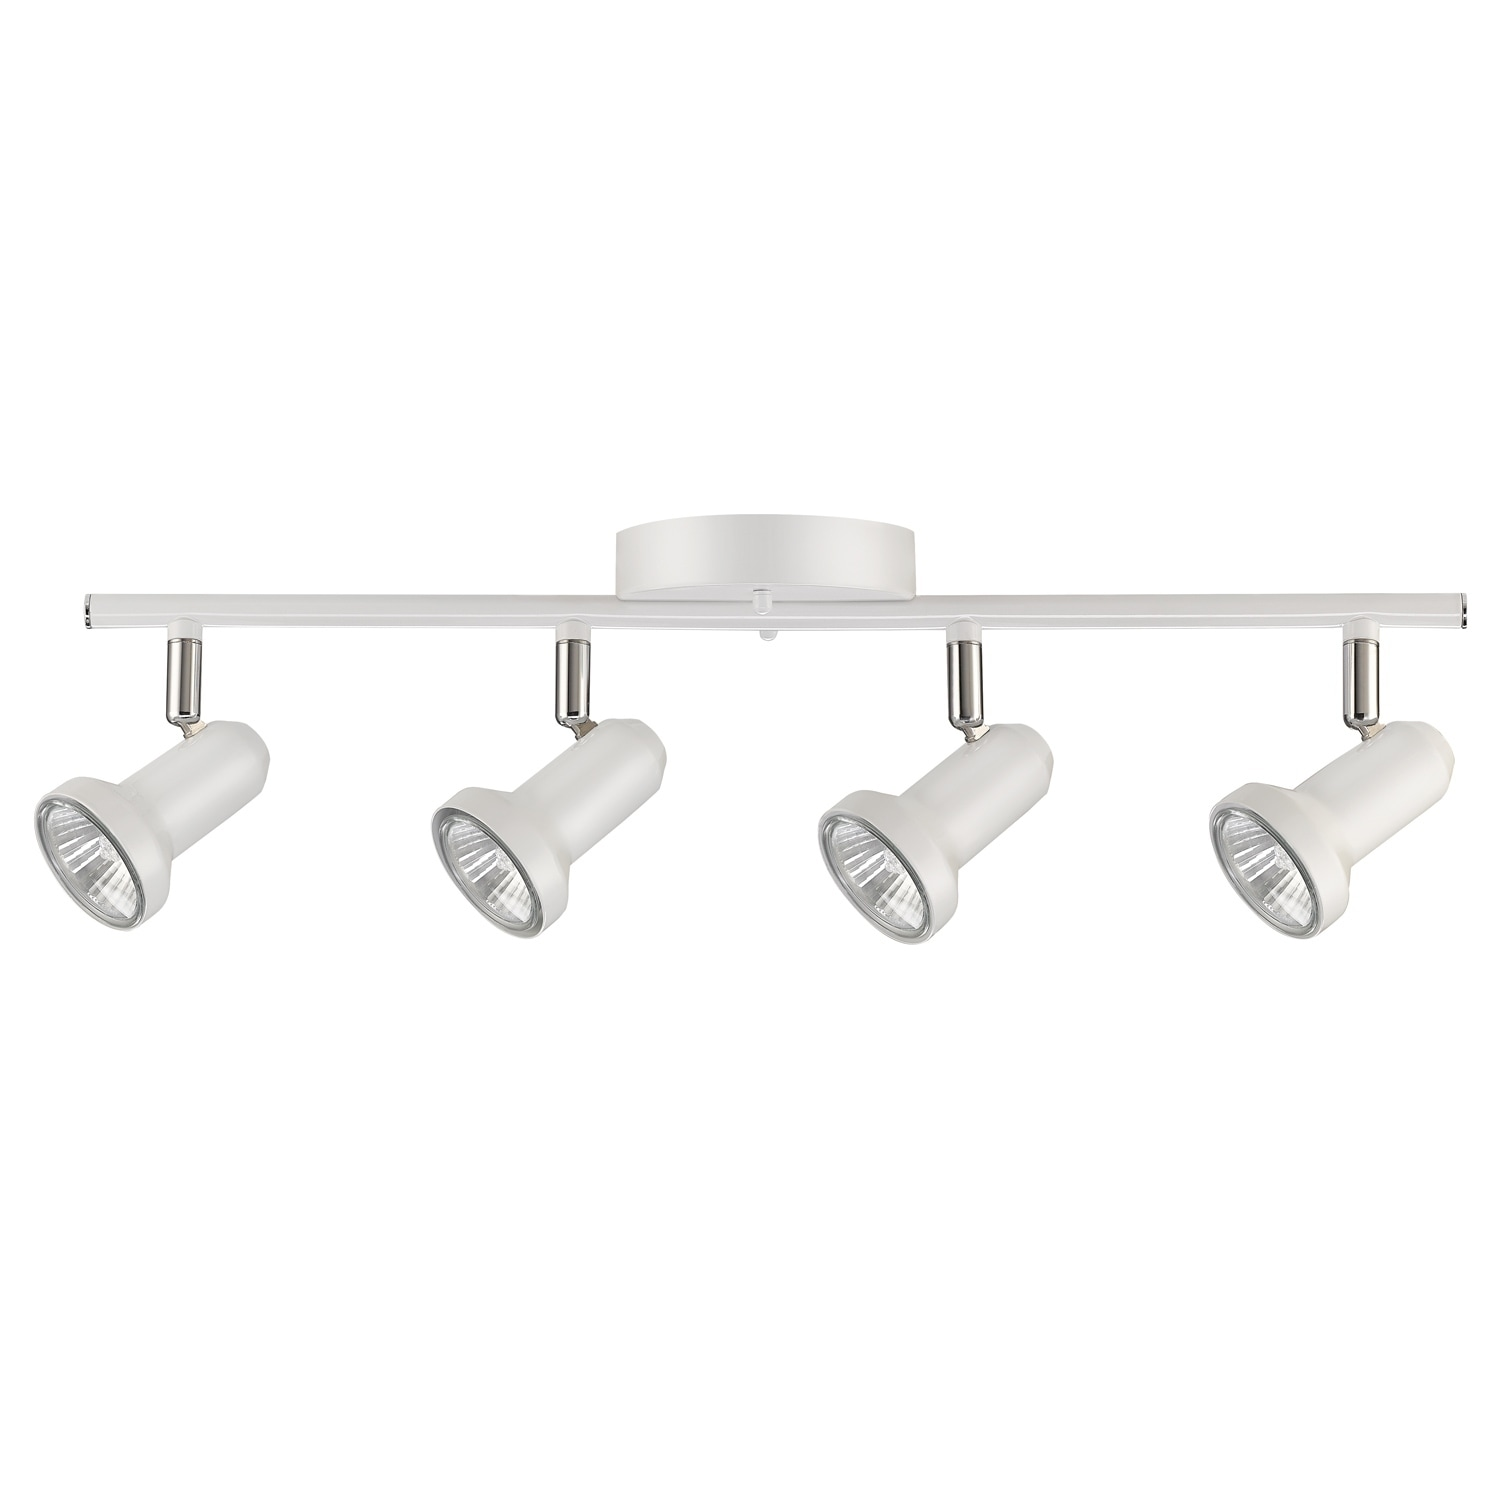 Melo 4-Light Track Lighting Glossy White Finish Bulbs Included - Free Shipping Today - Overstock - 26908605  sc 1 st  Overstock.com & Melo 4-Light Track Lighting Glossy White Finish Bulbs Included ...